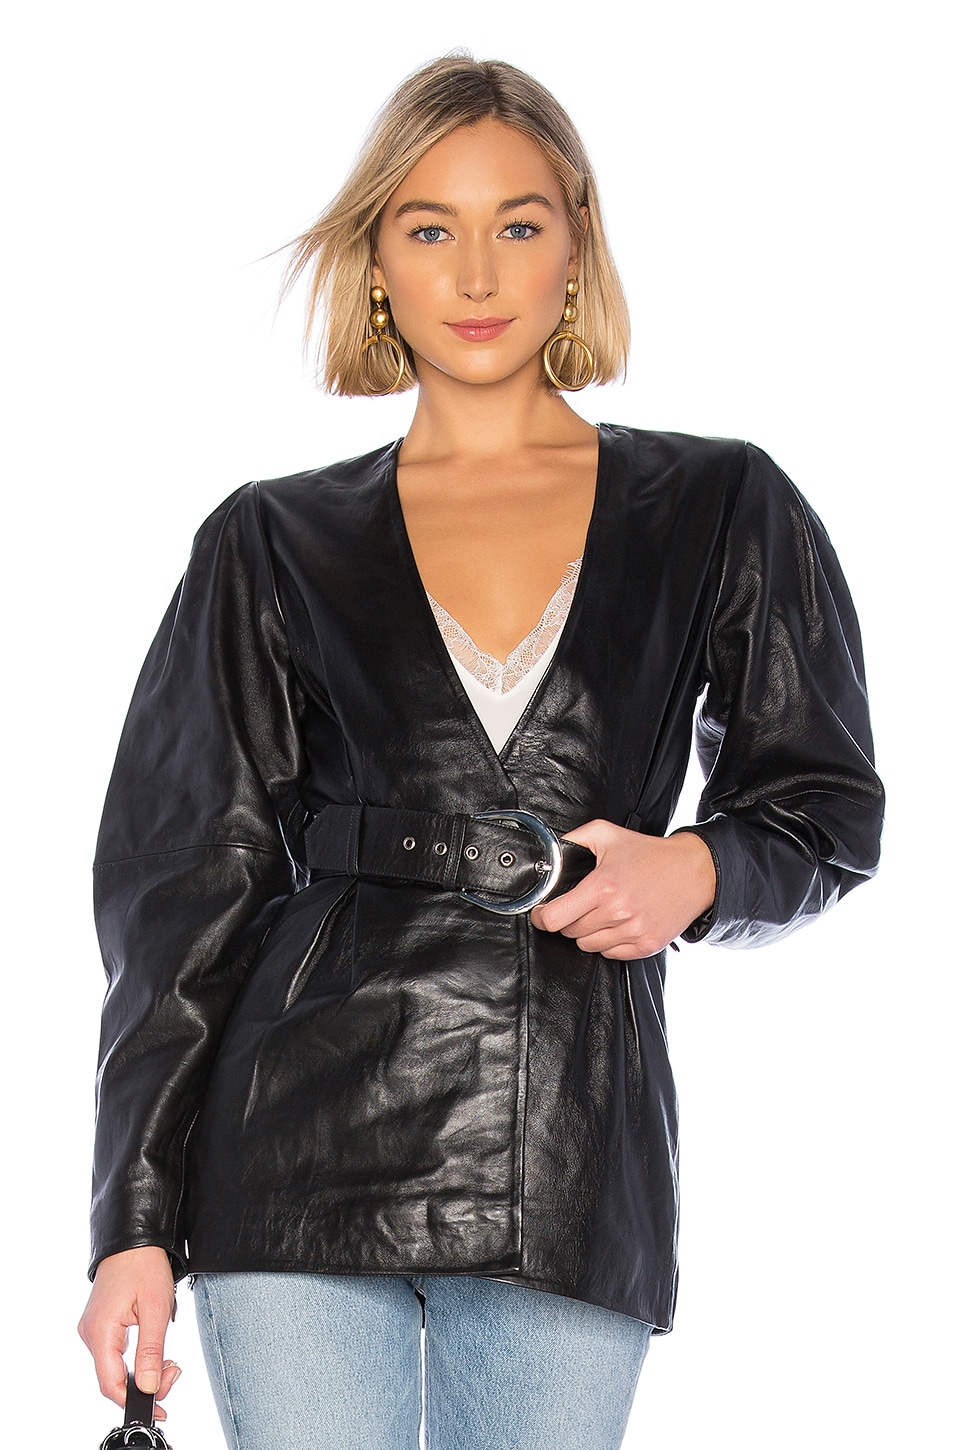 L'Academie The Marais Leather Jacket in Black